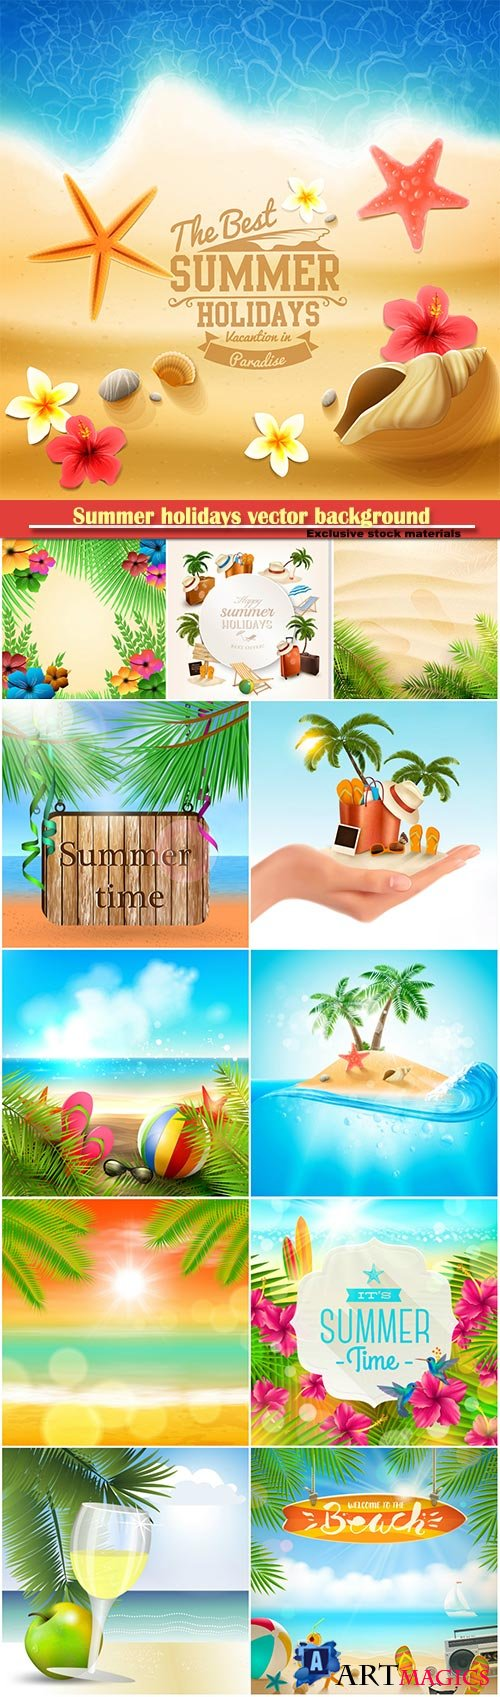 Summer holidays vector background, tropical beach, sea, fresh cocktails, sand # 7